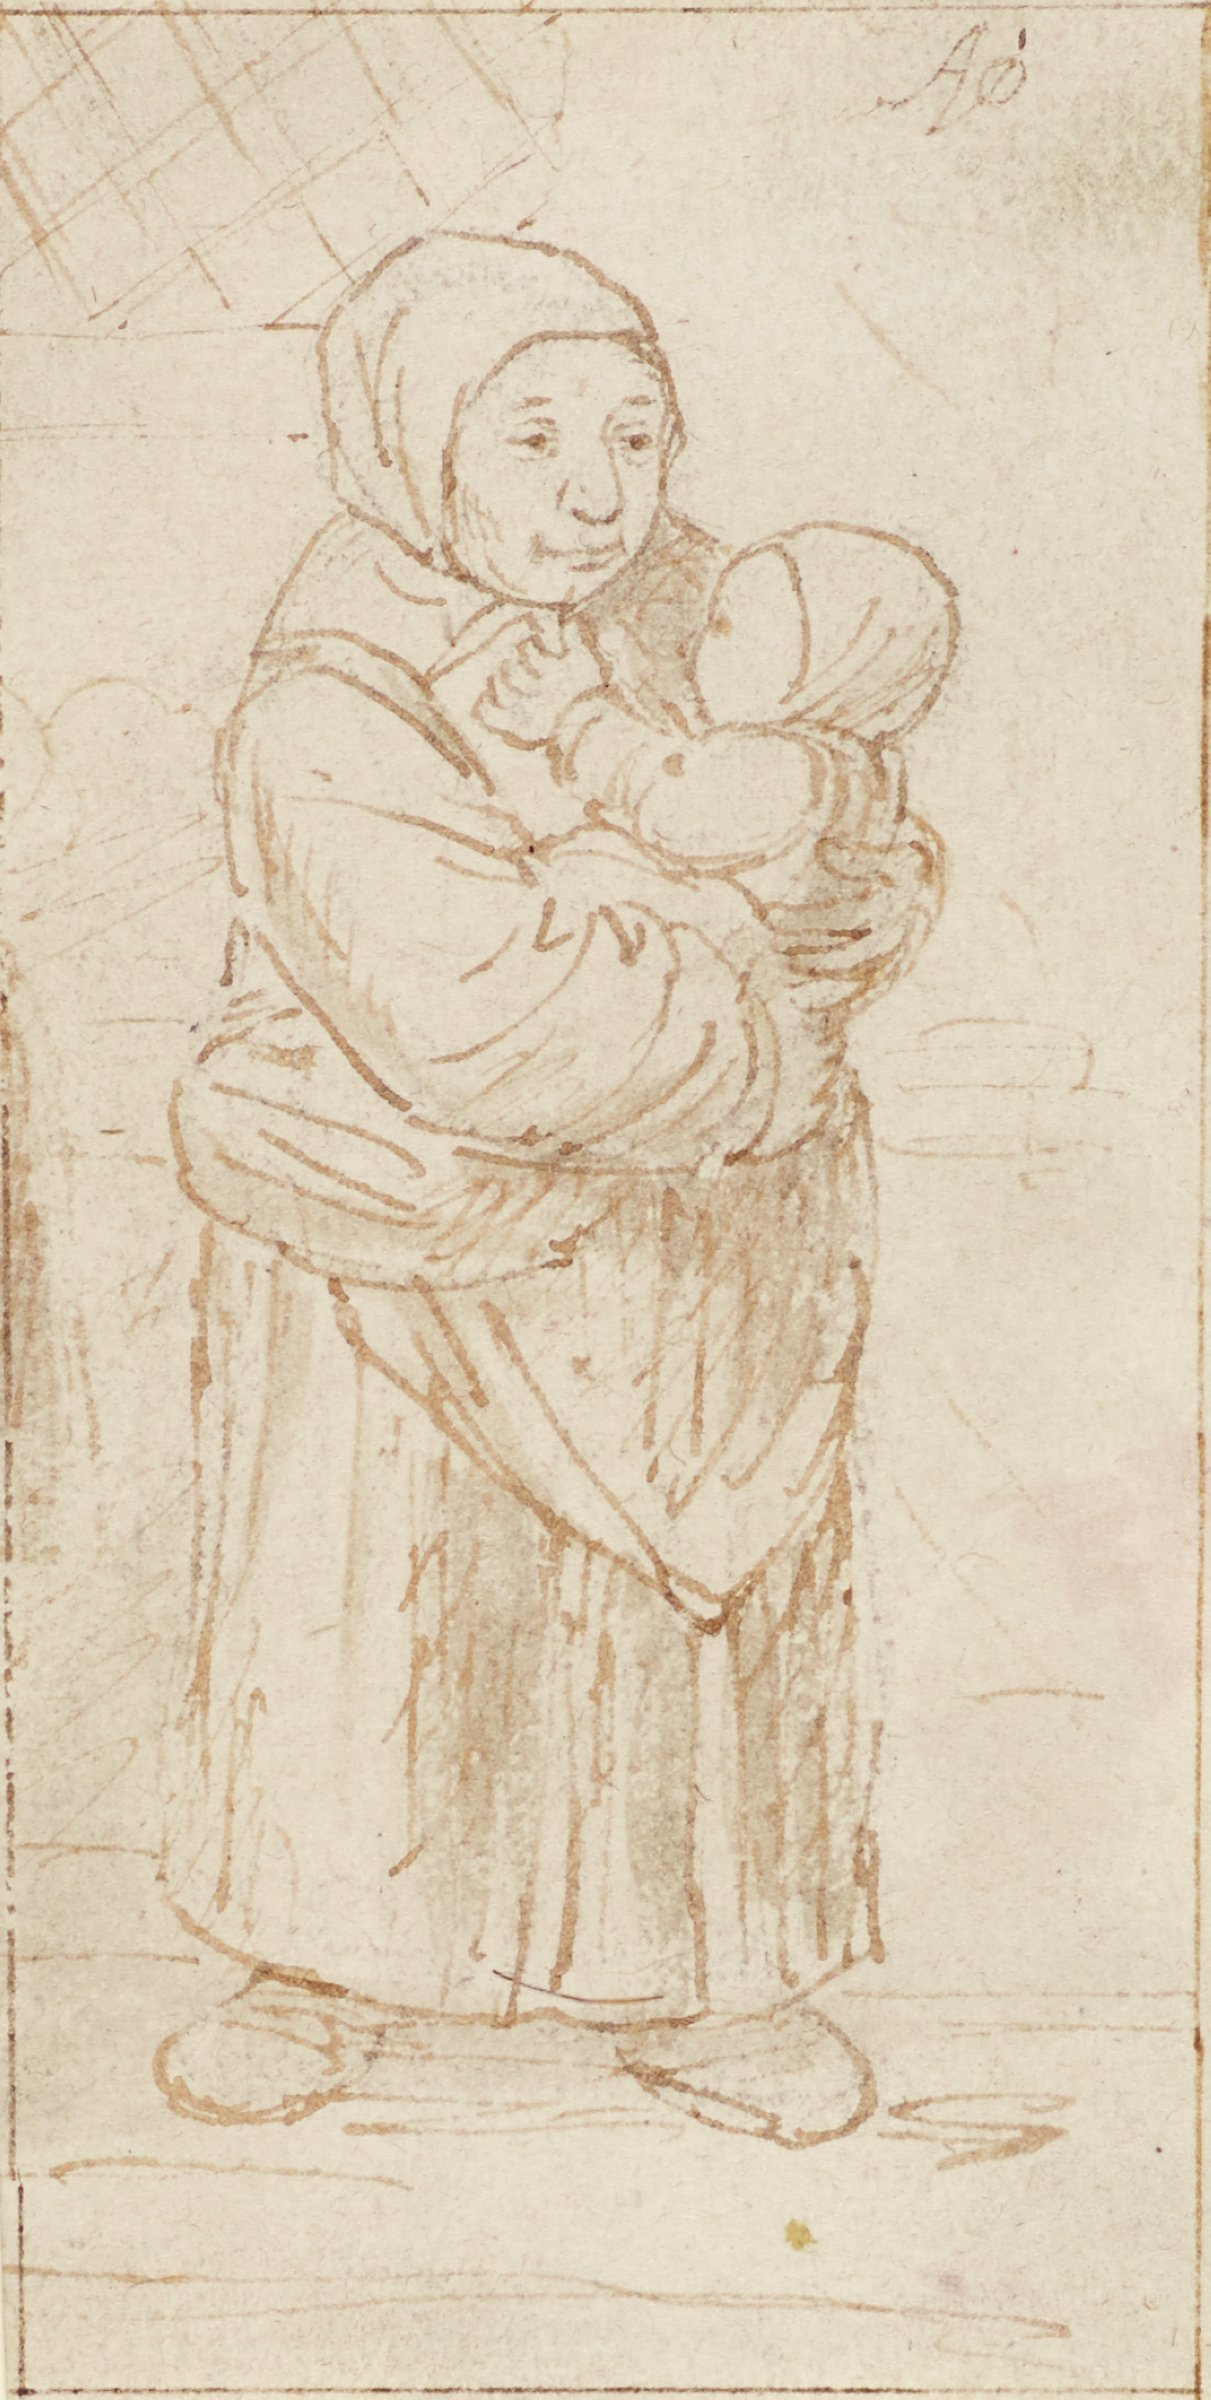 A woman stands cradling a baby in her arms. She stands facing slightly right as the baby faces her chest.